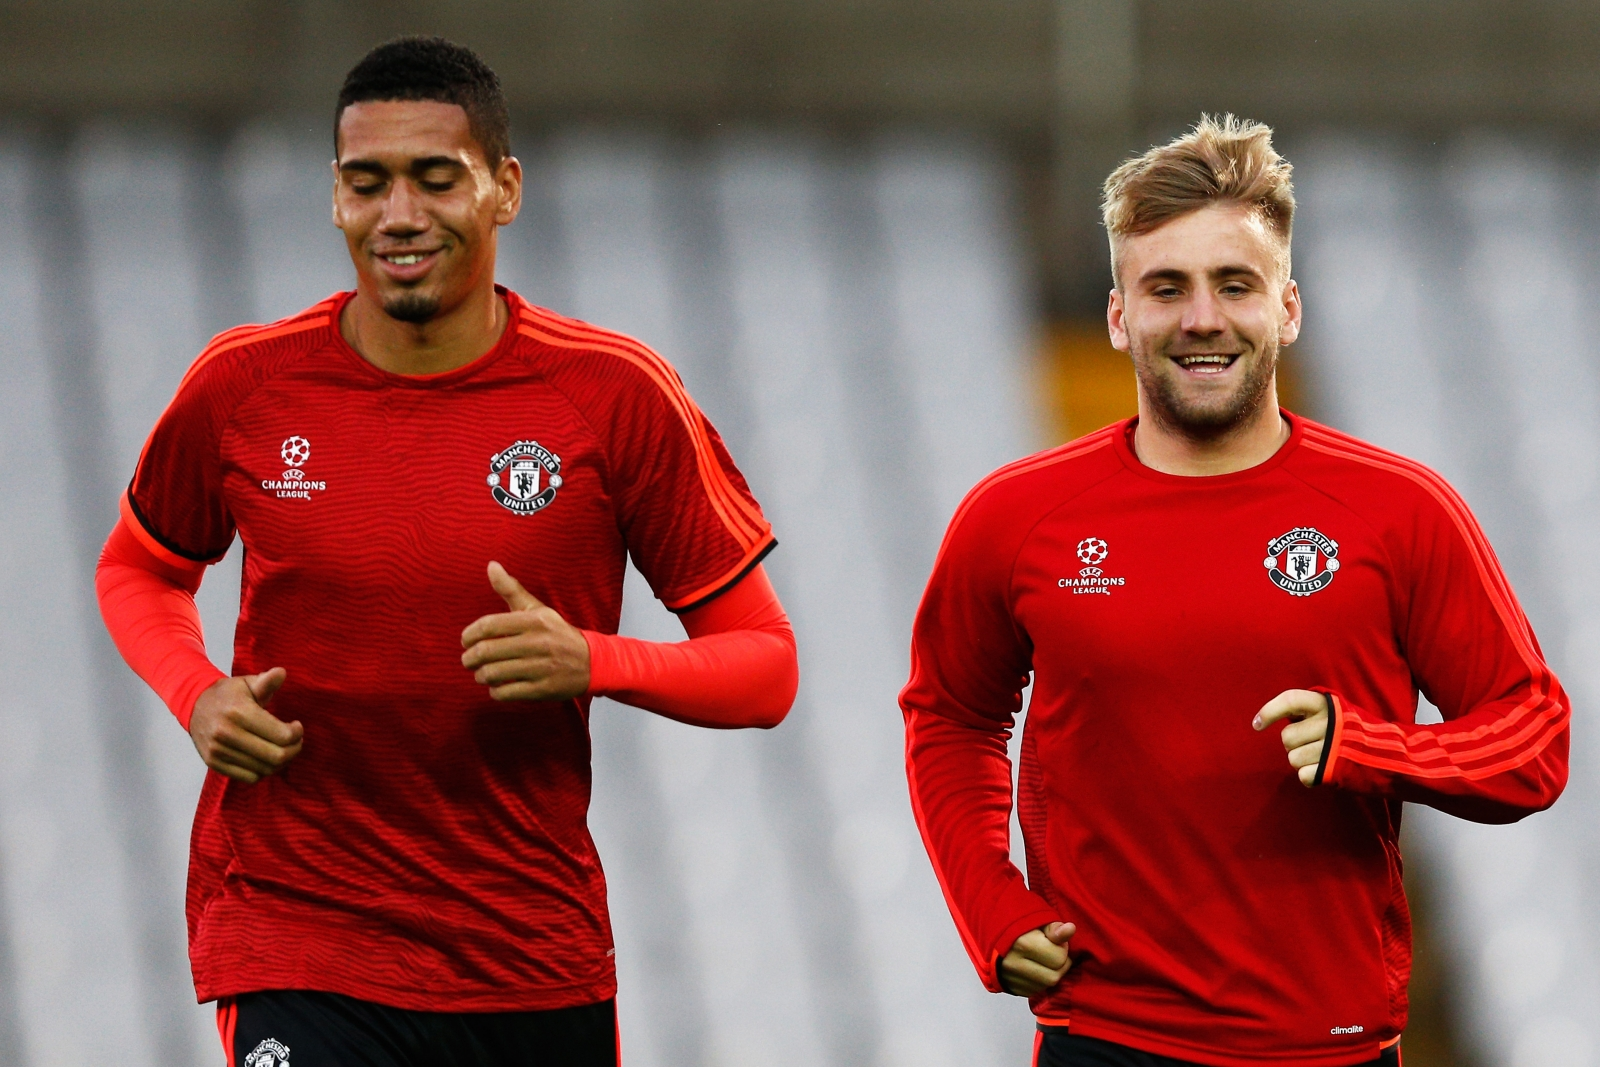 Chris Smalling (left) and Luke Shaw